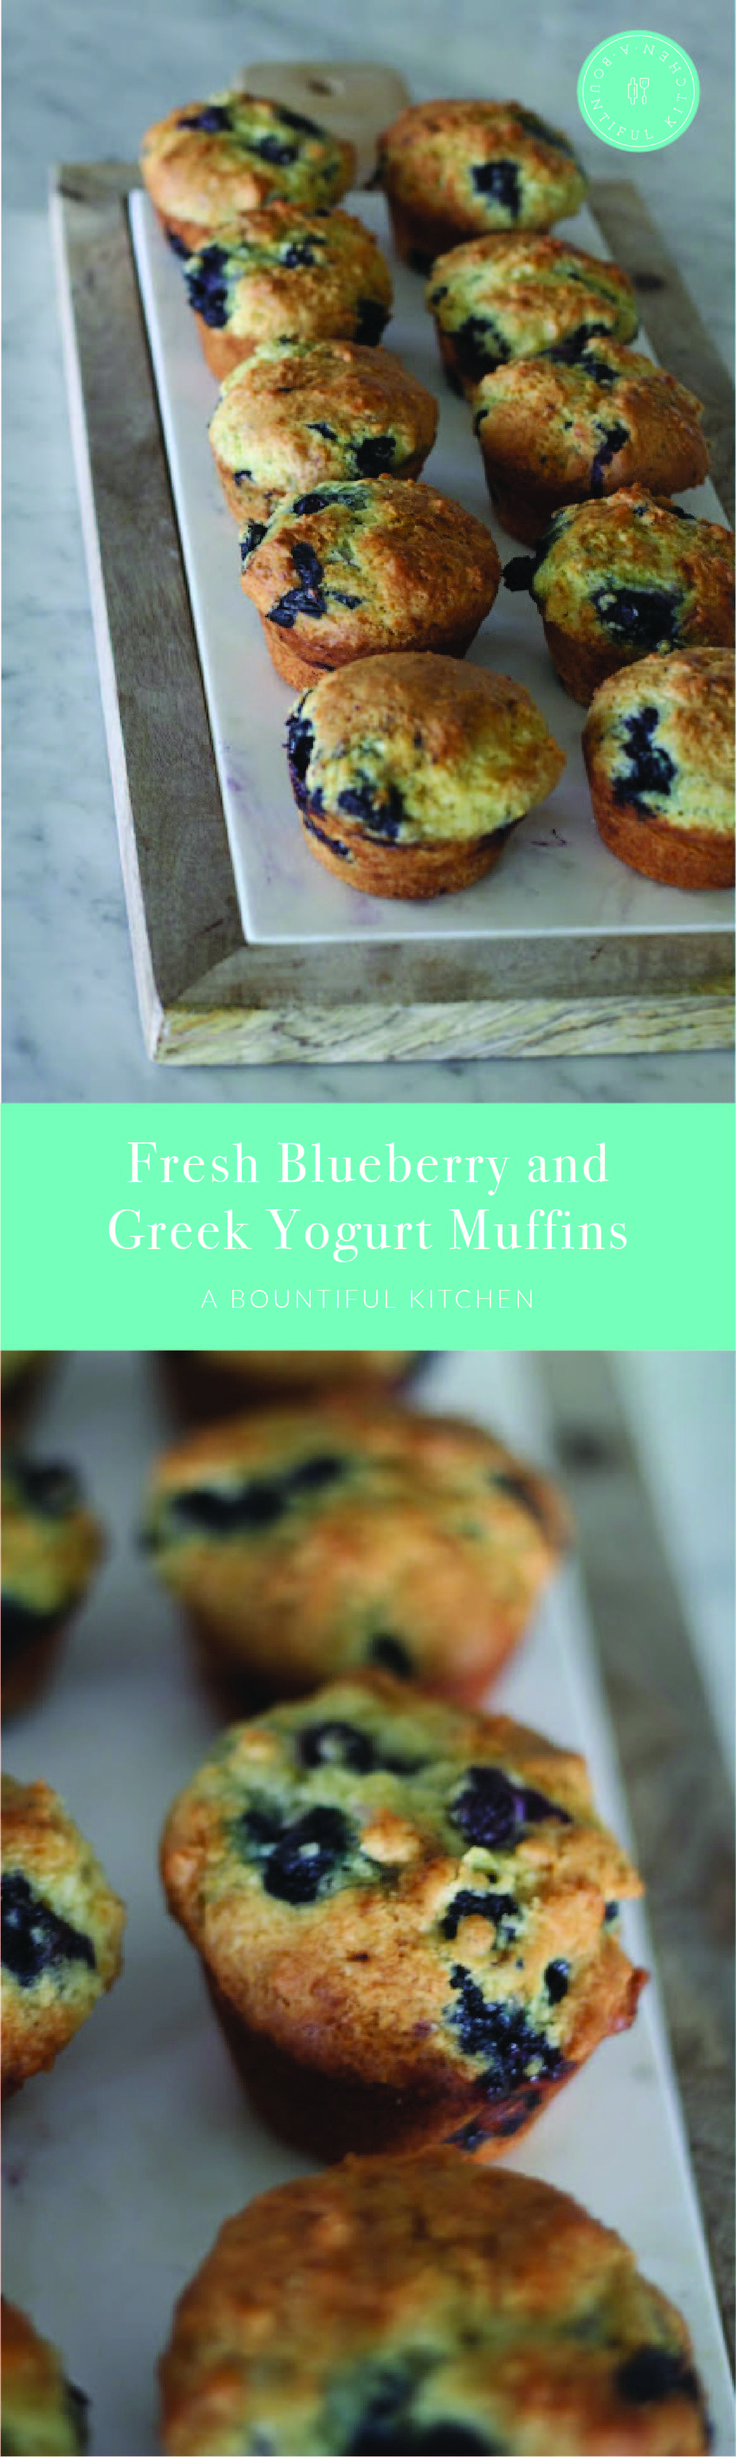 A Bountiful Kitchen: Fresh Blueberry and Greek Yogurt Muffins - I love the faint coconut scent when using coconut oil! Fresh blueberries are found everywhere right now, but frozen can be used in this recipe as well. #blueberry #greekyogurt #muffins #healthy #homemade #breakfast #brunch